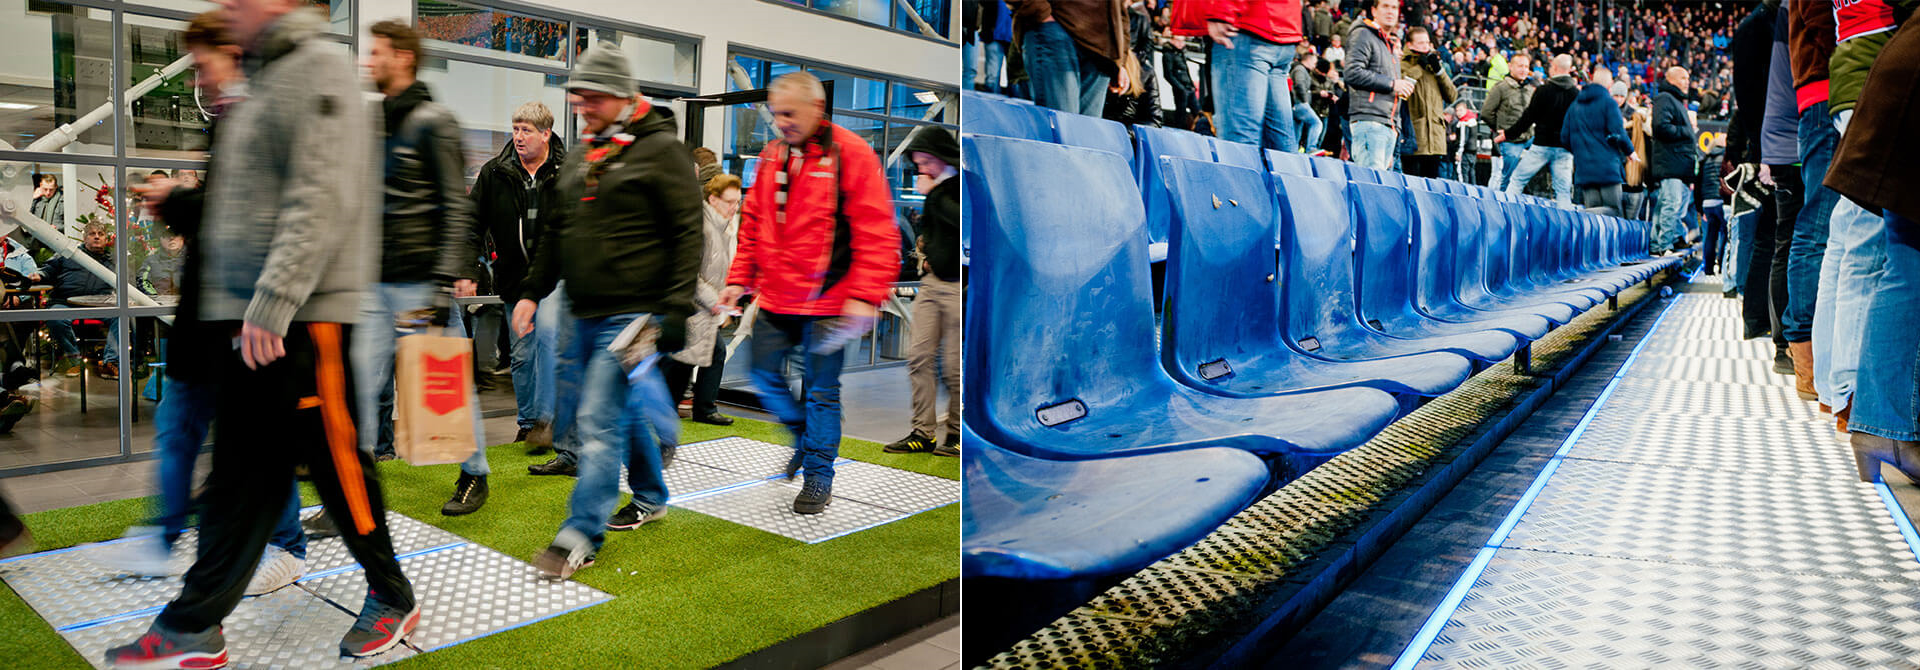 Dance Power Harvesting Movement Energy Out In The Stadium Battery Is Source Of Electricity Our Floors Installation At Dekuip Soccer Rotterdam Were Installed Main Entrance And Front Maastribune Section